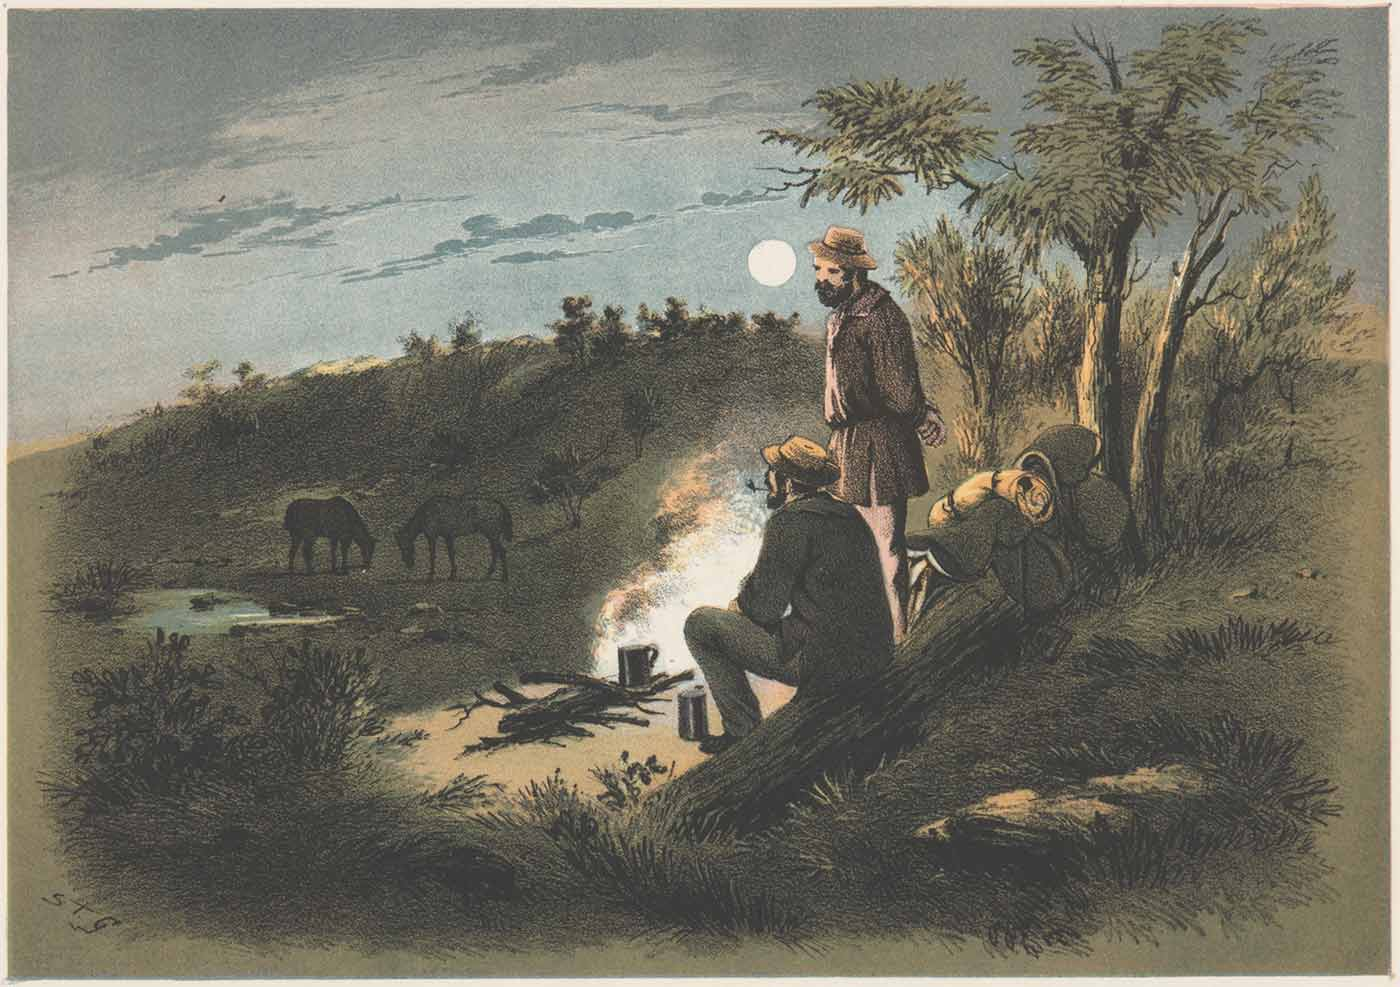 Watercolour painting of two men sitting and standing around a campfire at night with their swags beside them. In the distance are their two horses feeding on the grass. - click to view larger image